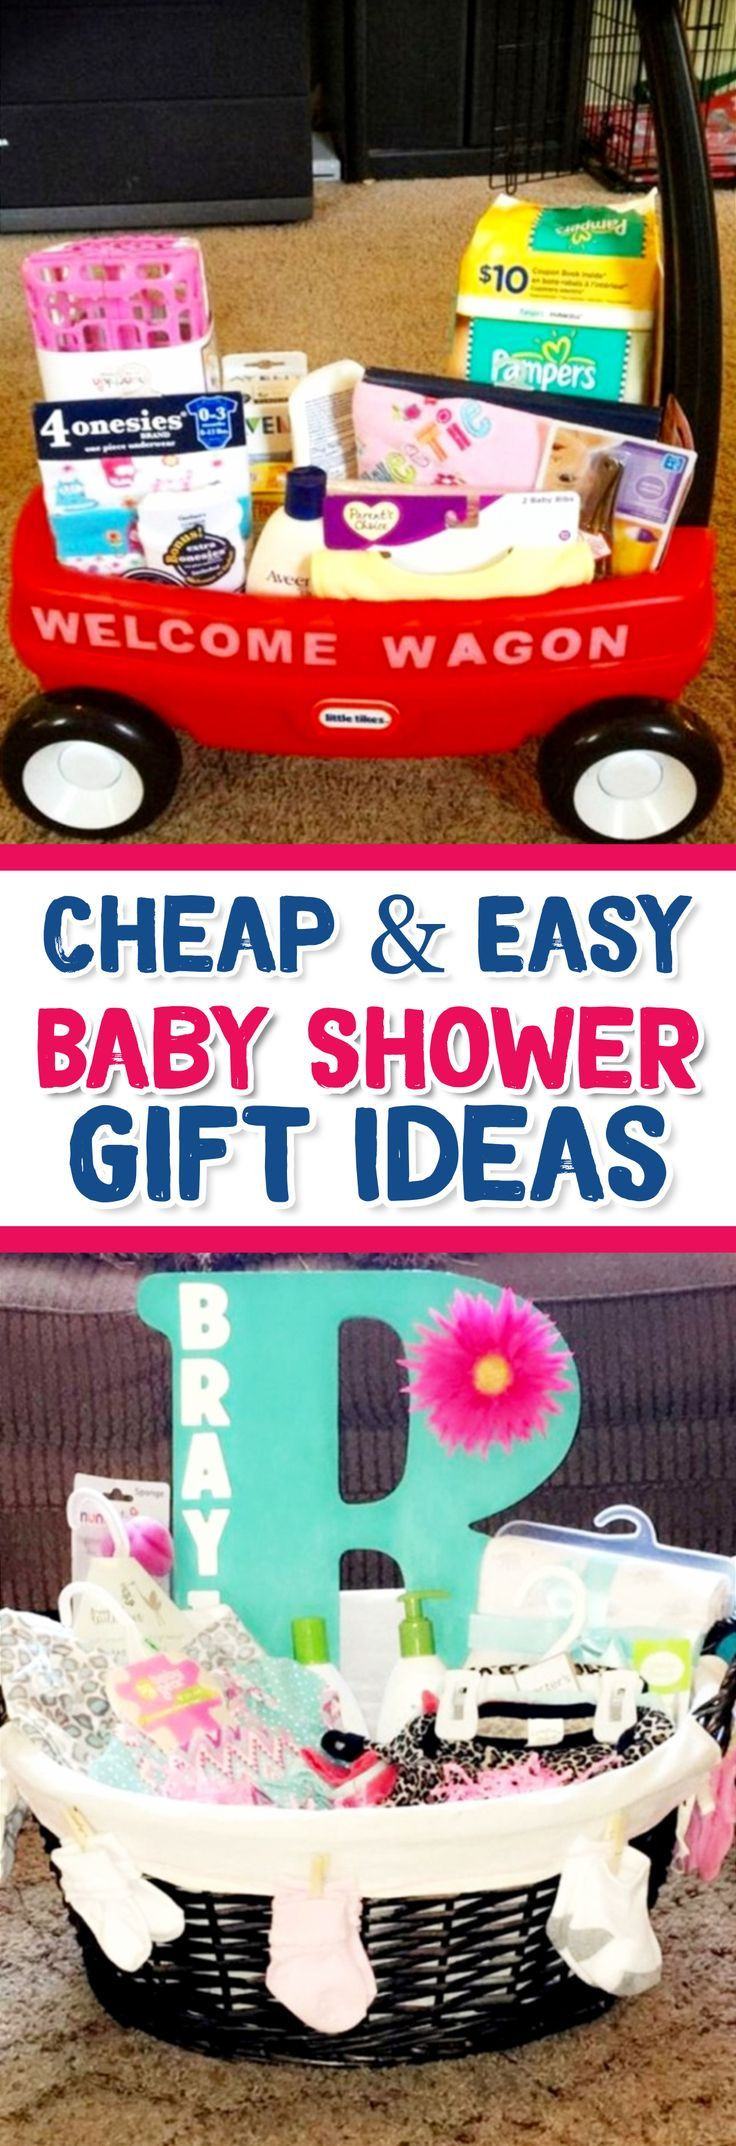 Best ideas about Cheap Baby Gift Ideas . Save or Pin The 25 best Cheap baby shower ts ideas on Pinterest Now.